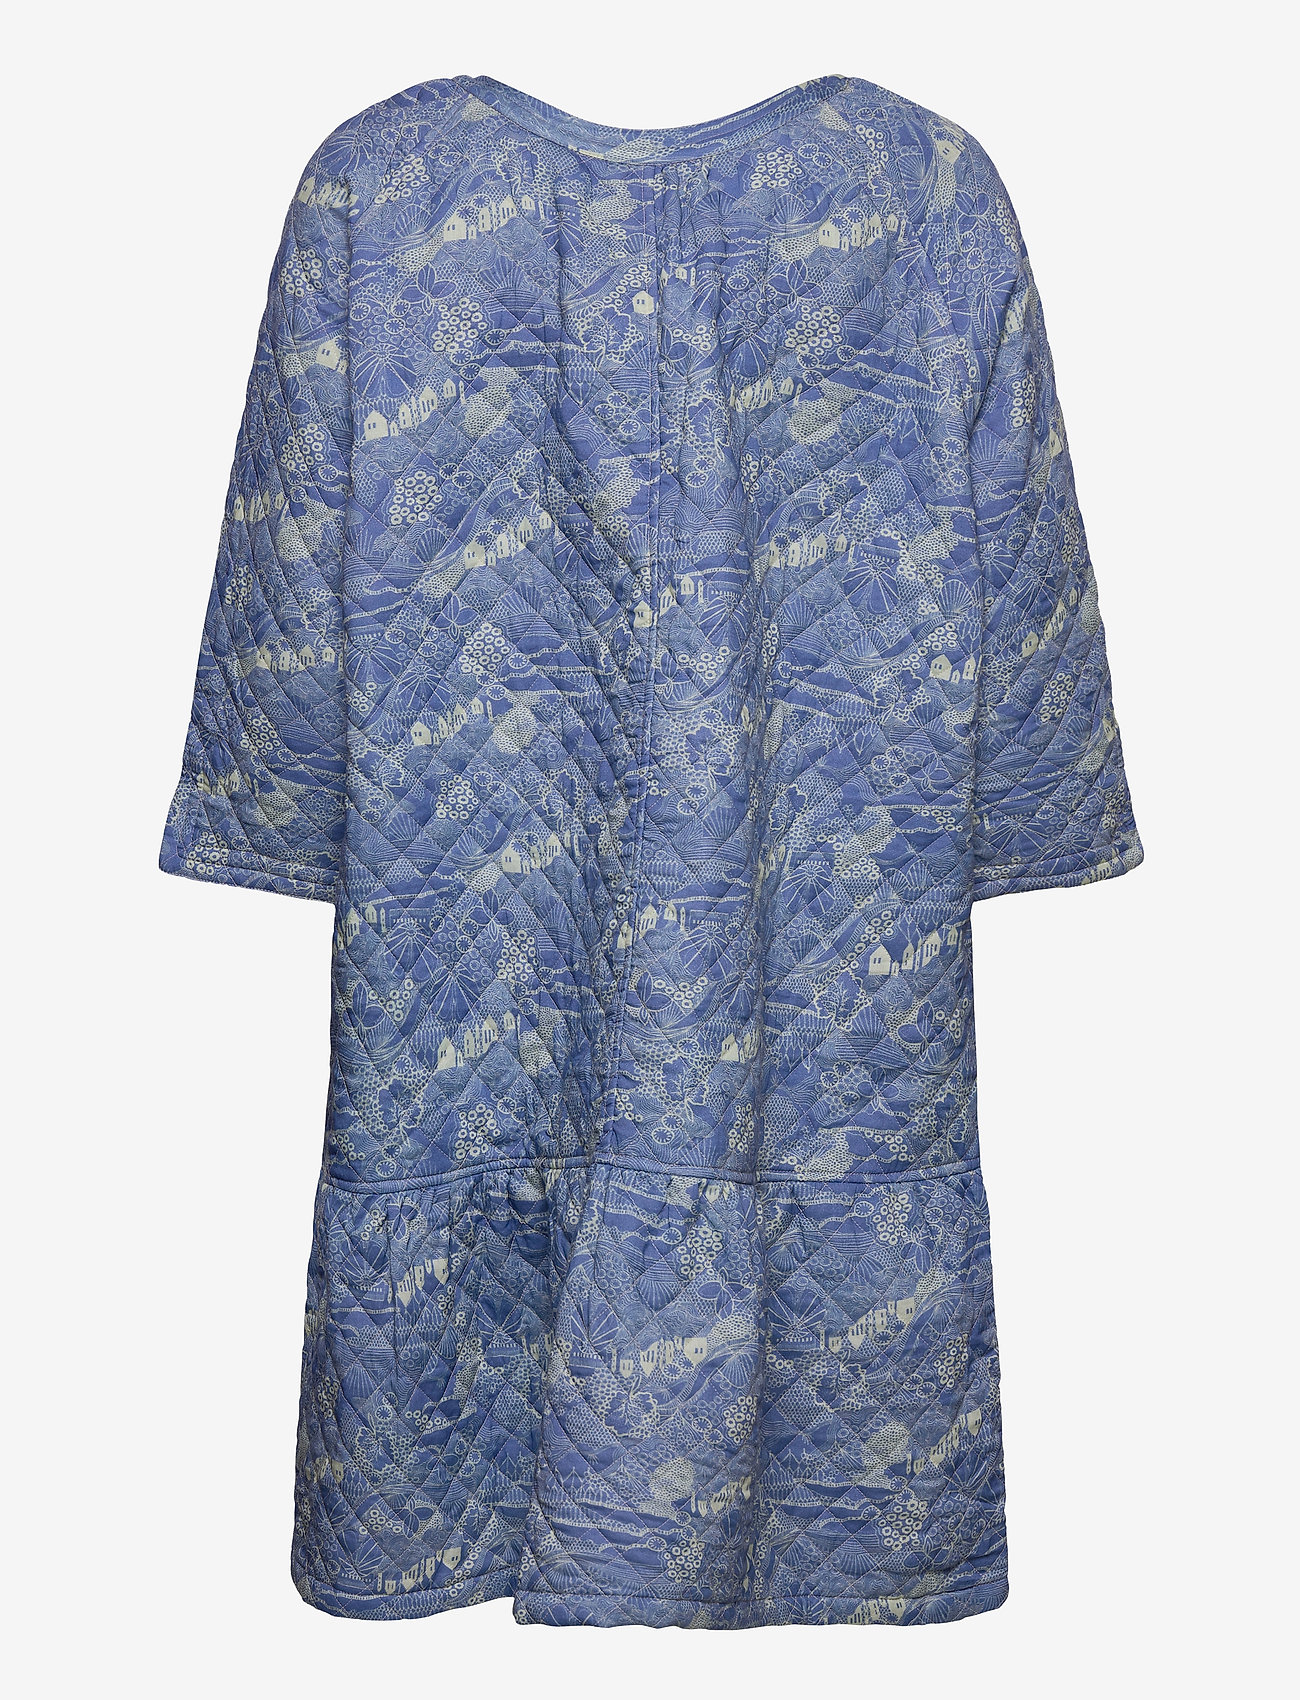 Noa Noa - Light outerwear - dunne jassen - print blue - 1